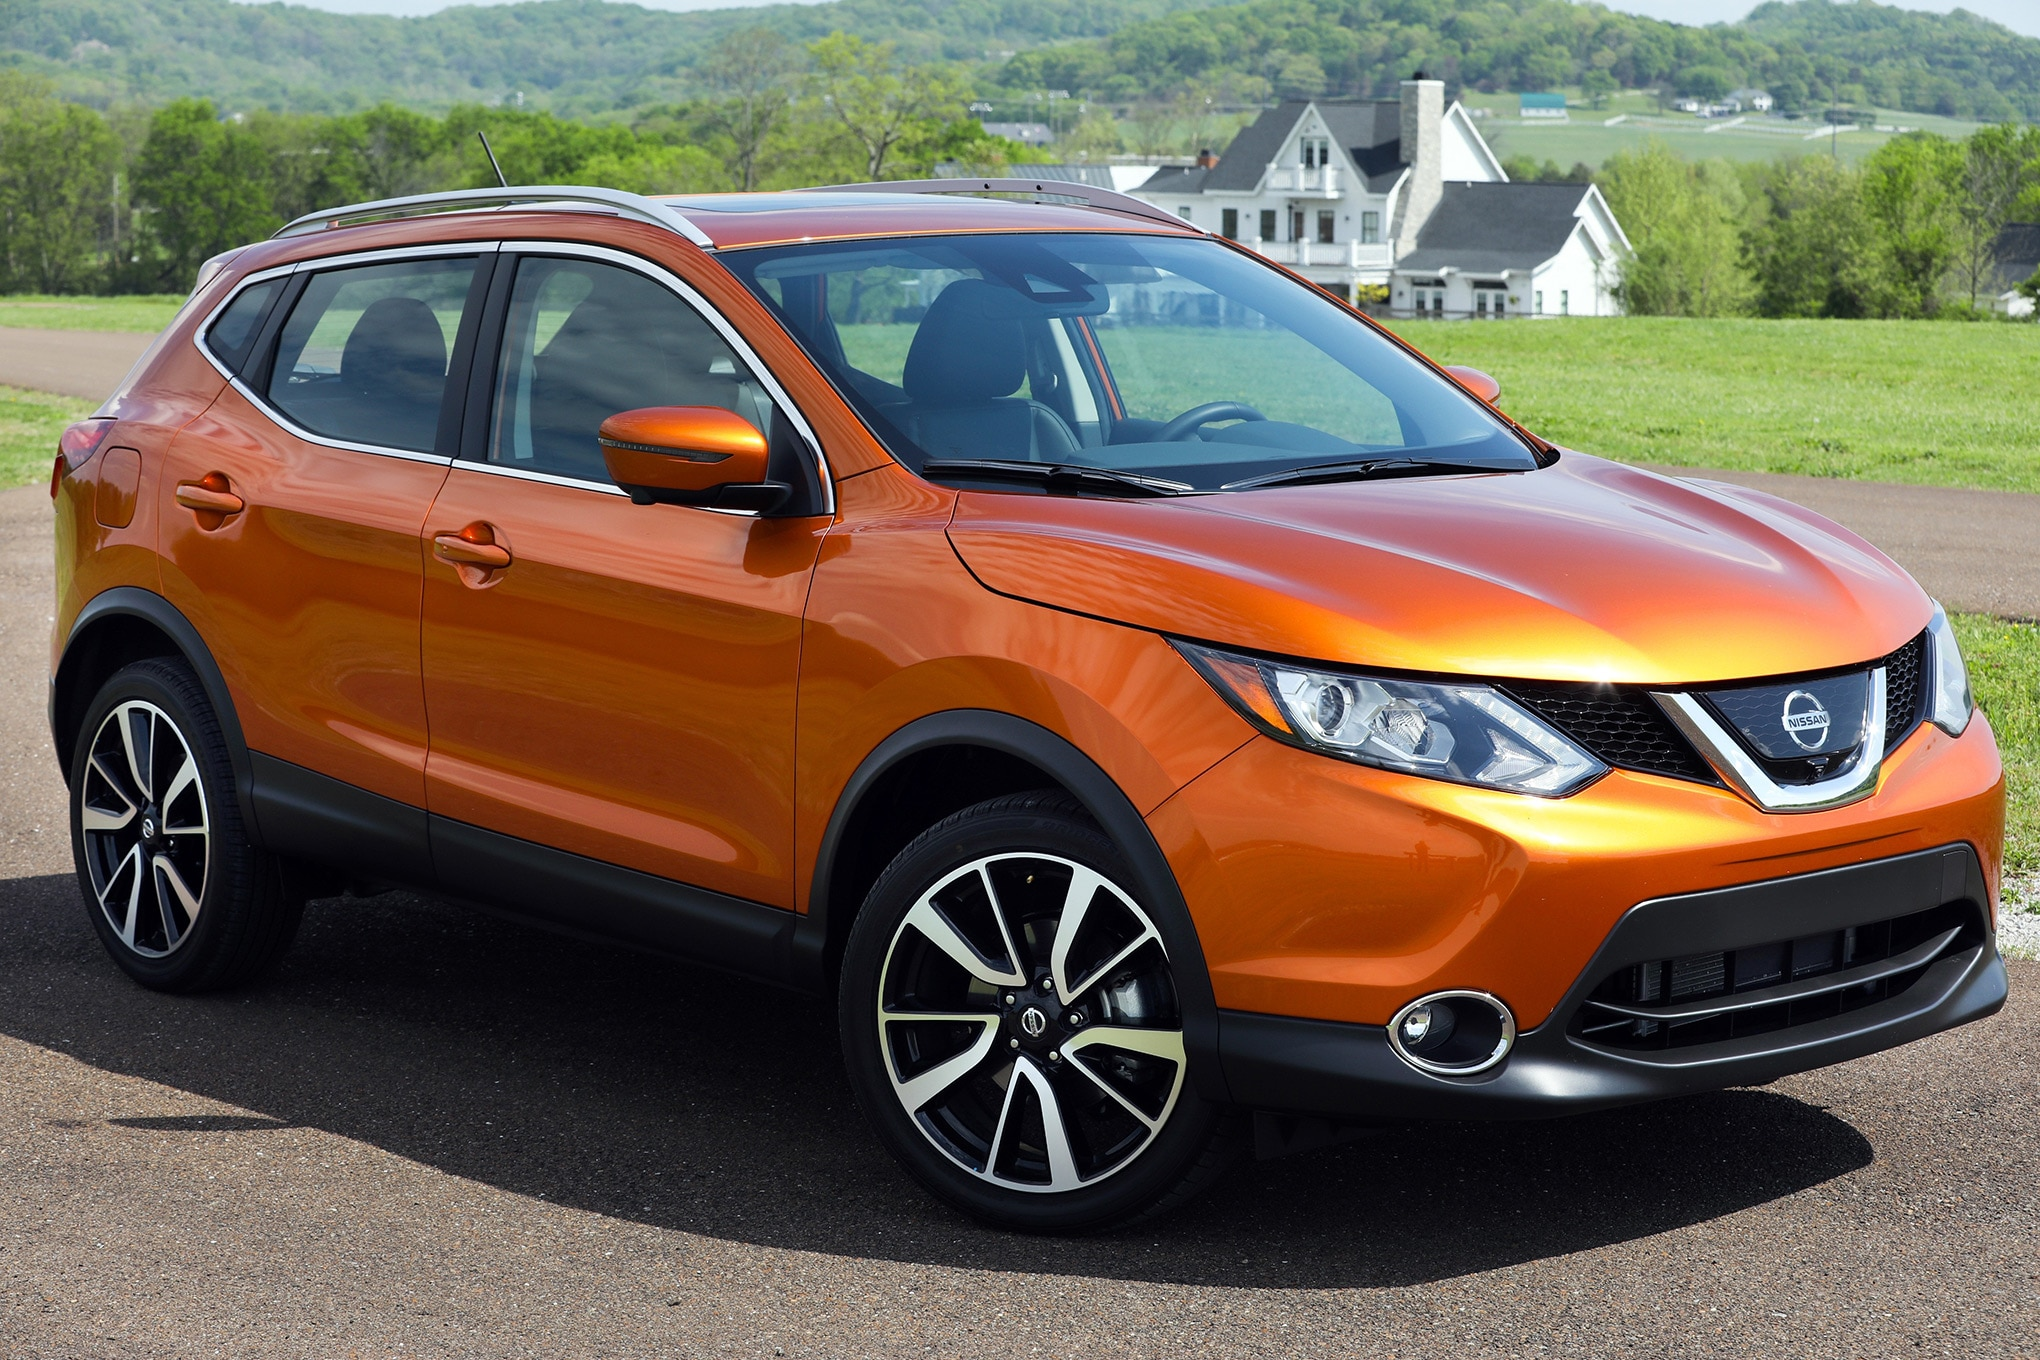 2017 Nissan Rogue Sport First Drive Review | Automobile ...